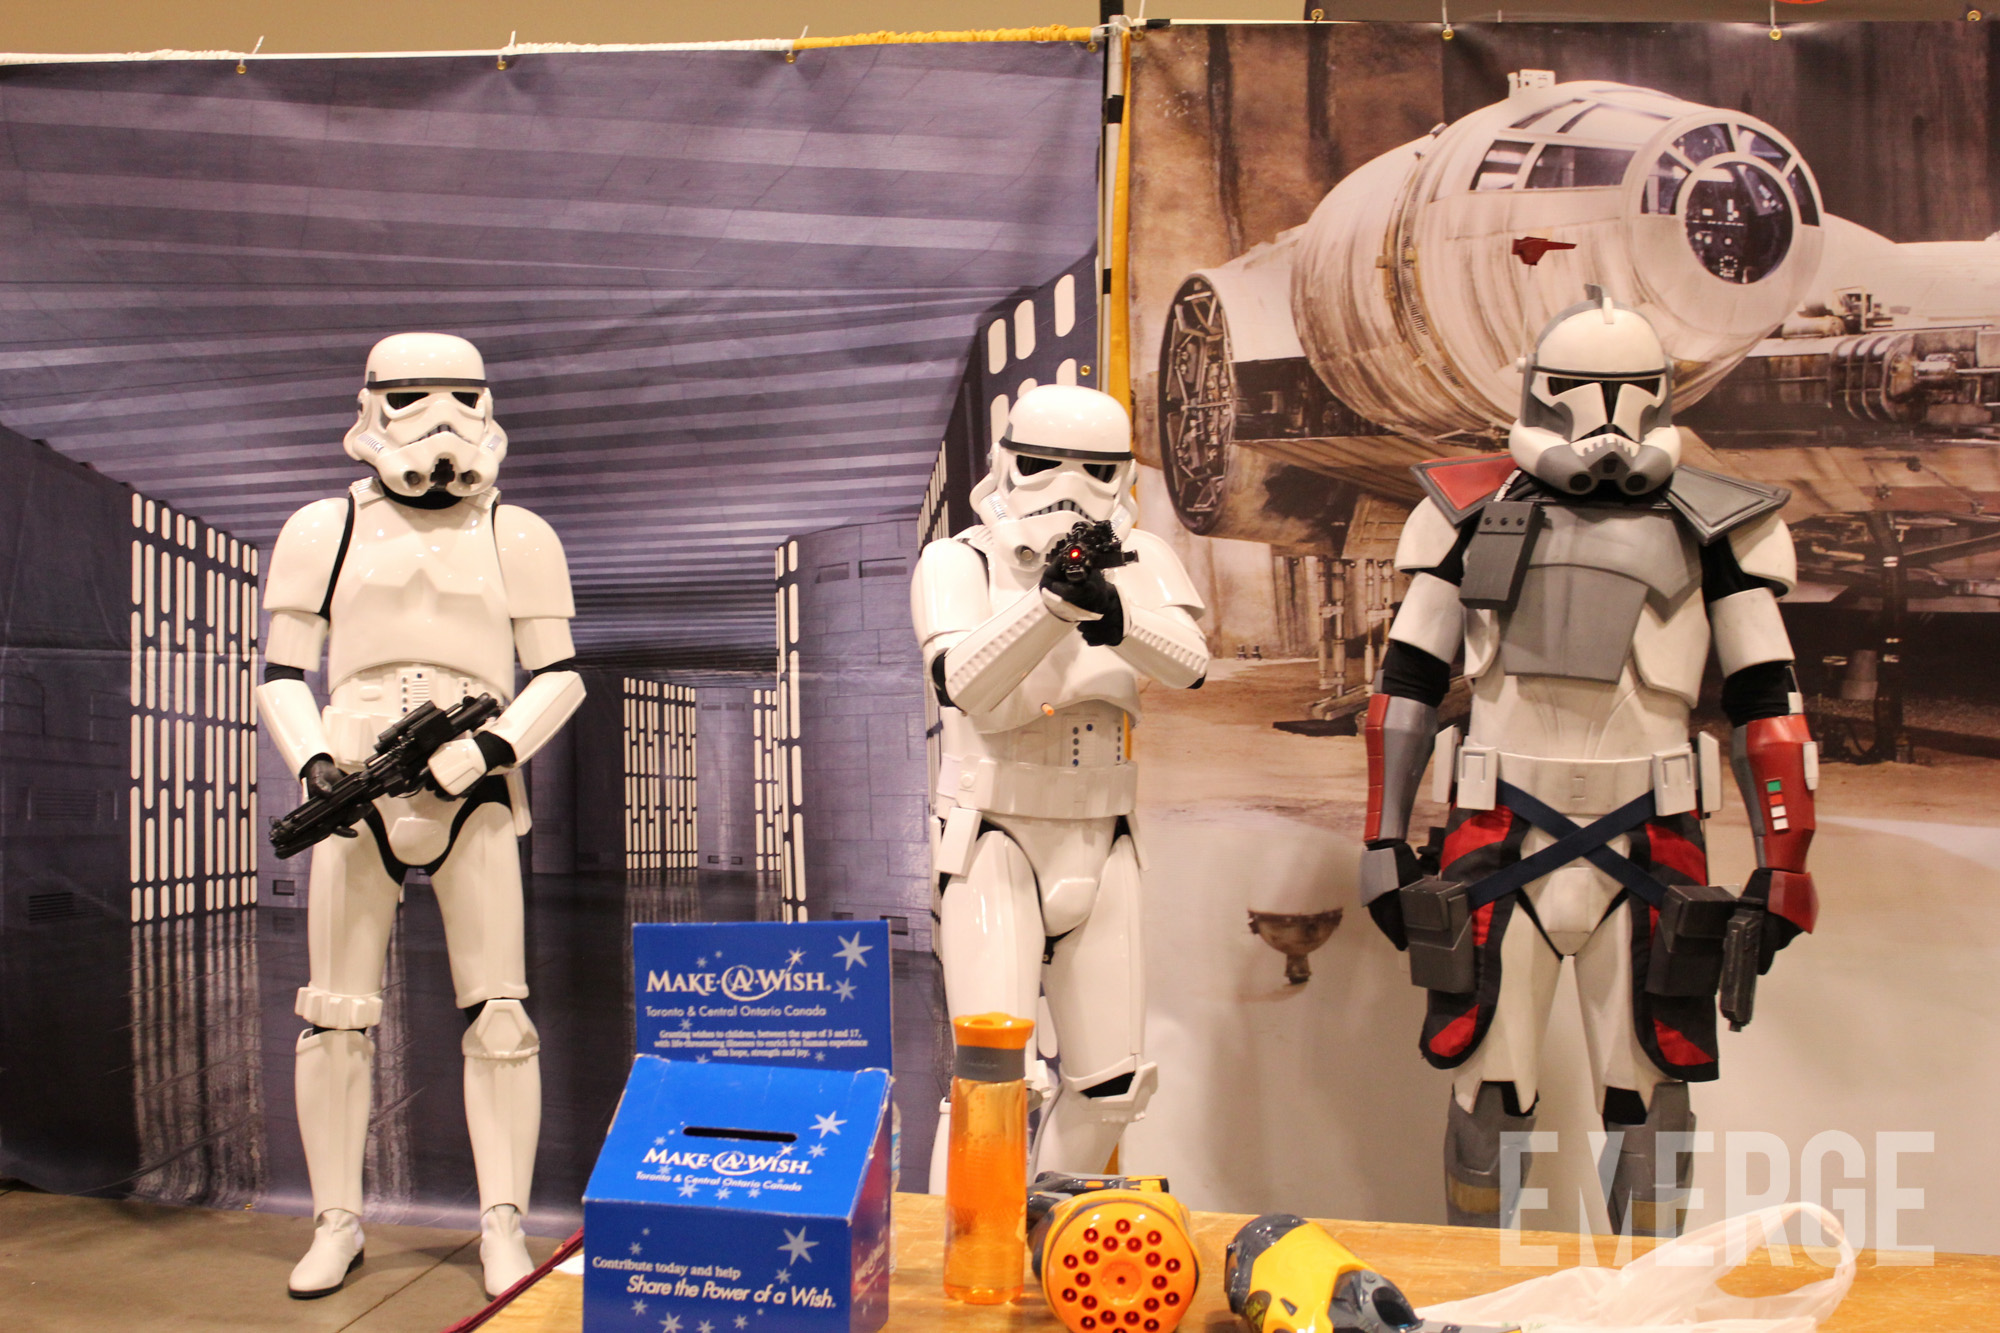 Don't worry, Stormtroopers always miss